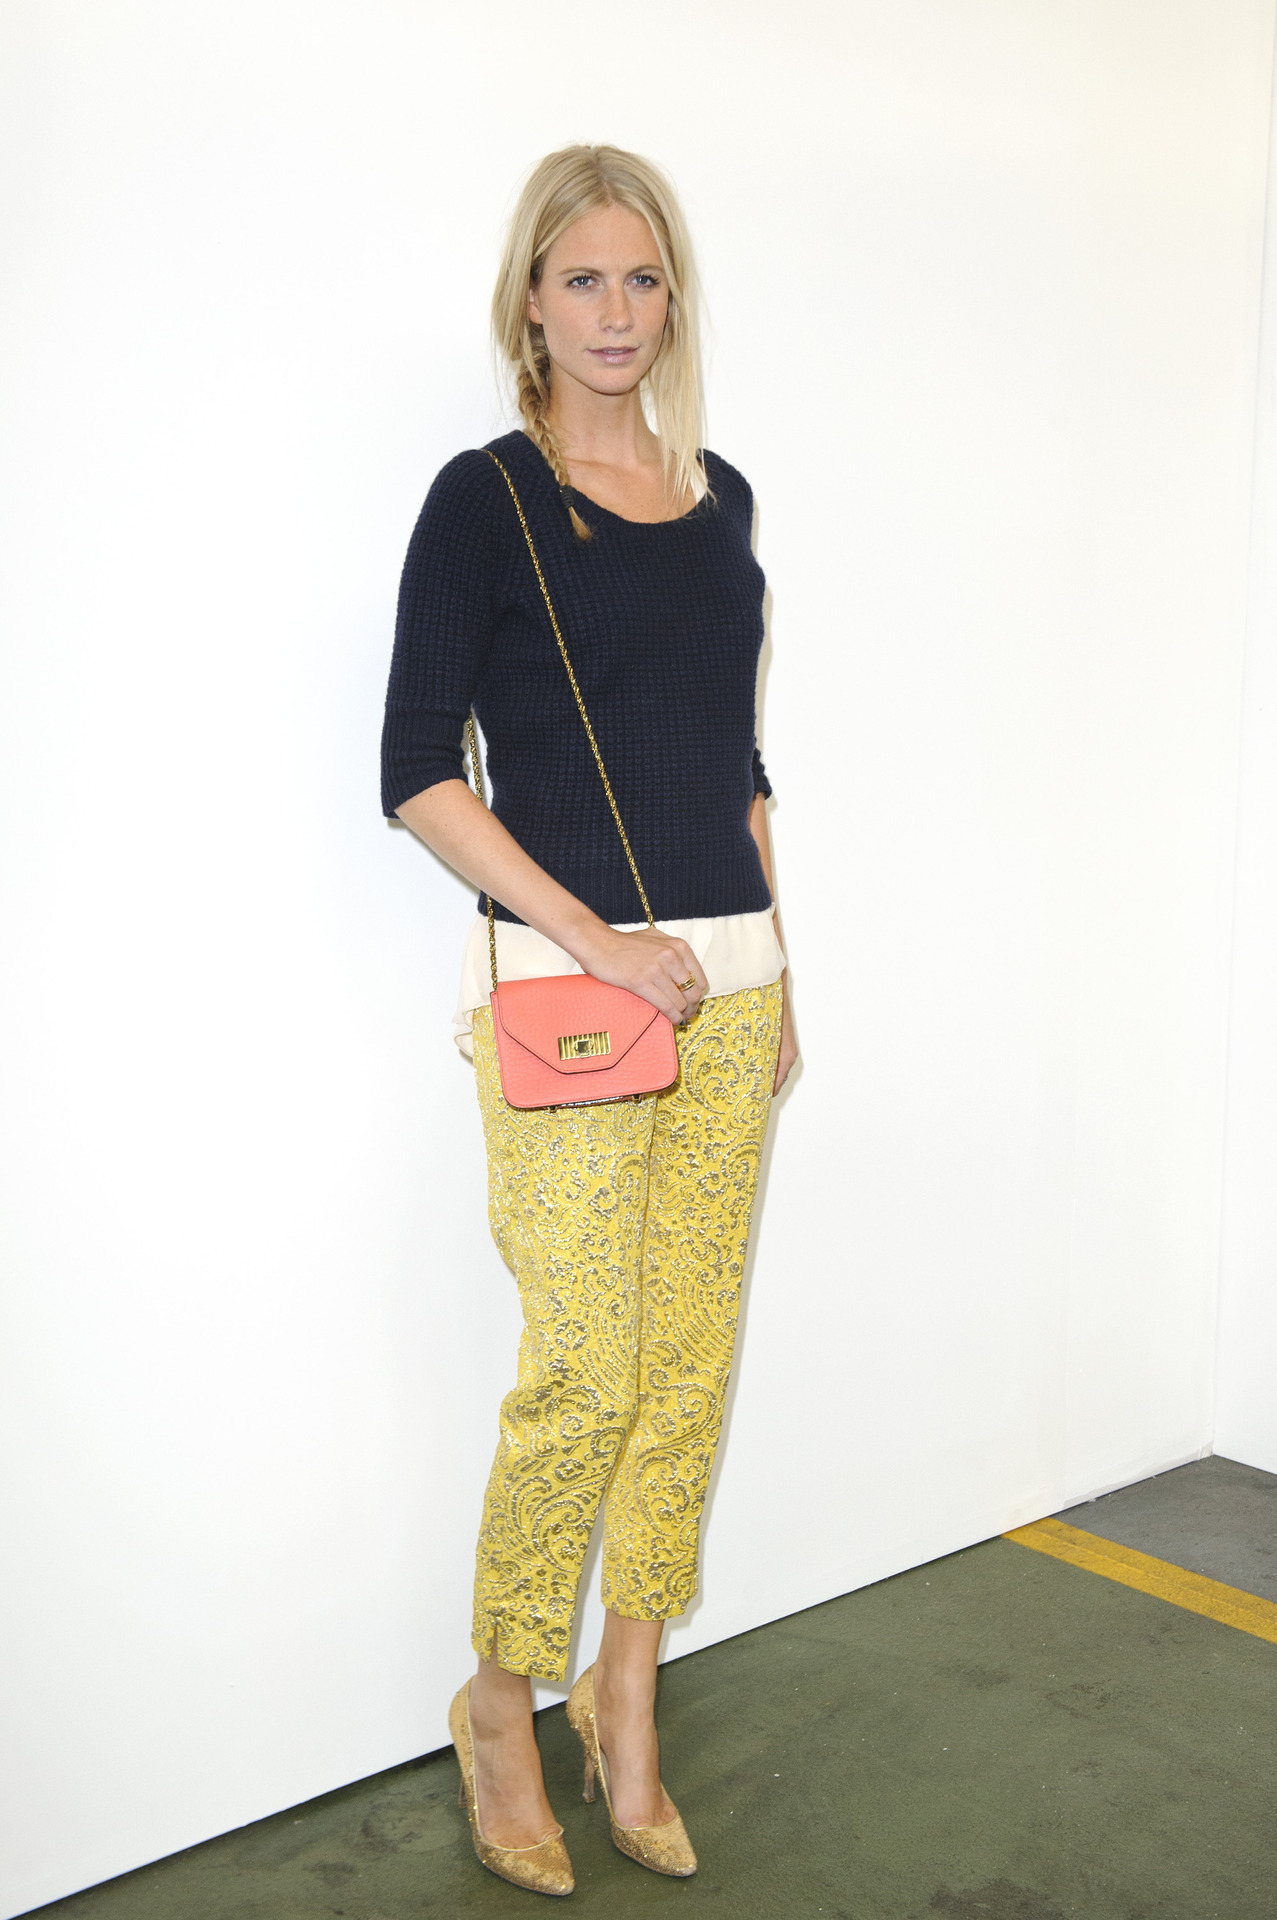 ofthemomentblog:  Poppy Delevingne at House of Holland in yellow brocade trousers, knitted pullover, gold heels and braided hair. It's all about high and low in London!